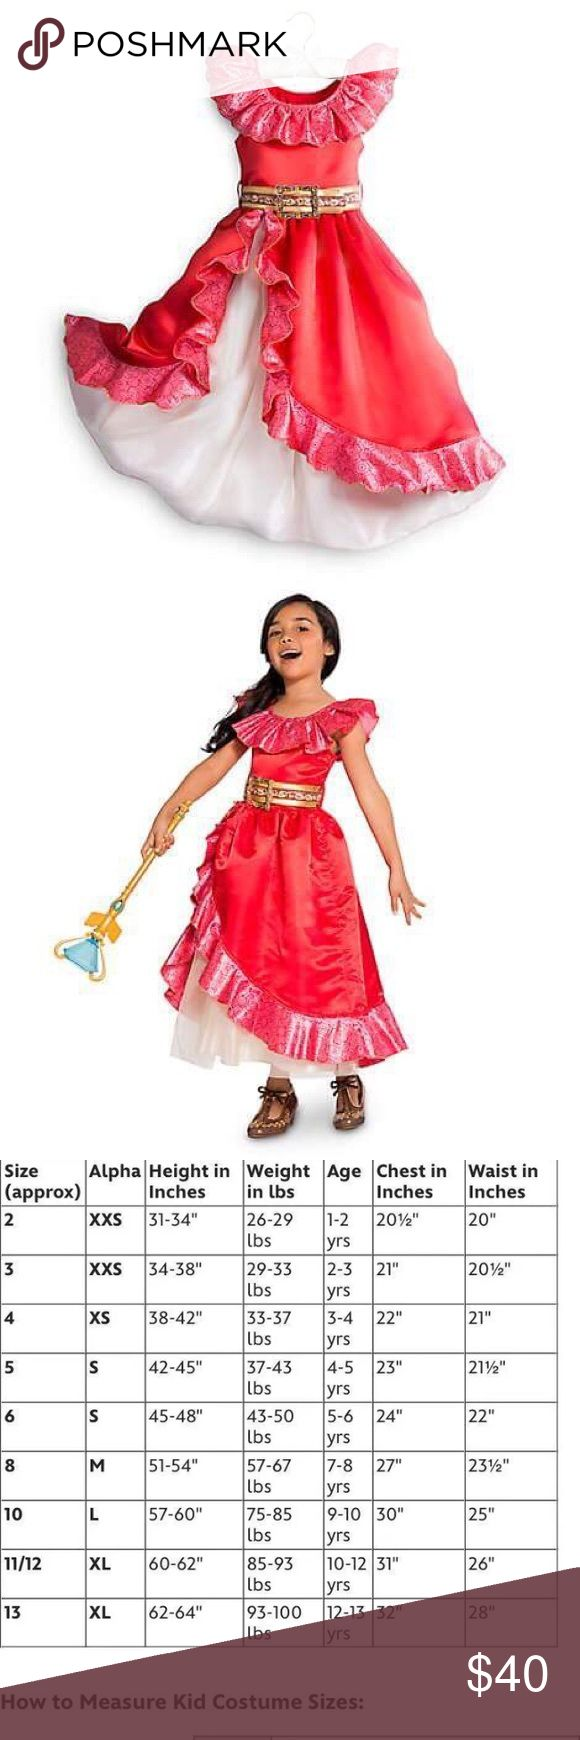 Disney Store Latina Princess Elena Costume 7/8 New With Tags Disney Store 1st Disney Latina Princess!! Princess Elena of Avalor Child Girls costume Gown. Size 7/8. See official Disney Store side chart in images. Costume includes: Flamenco 💃🏽 Inspired Dress with layers of tulle. And gold fabric belt. 100% authentic Disney Store costume. Disney Store Costumes Halloween